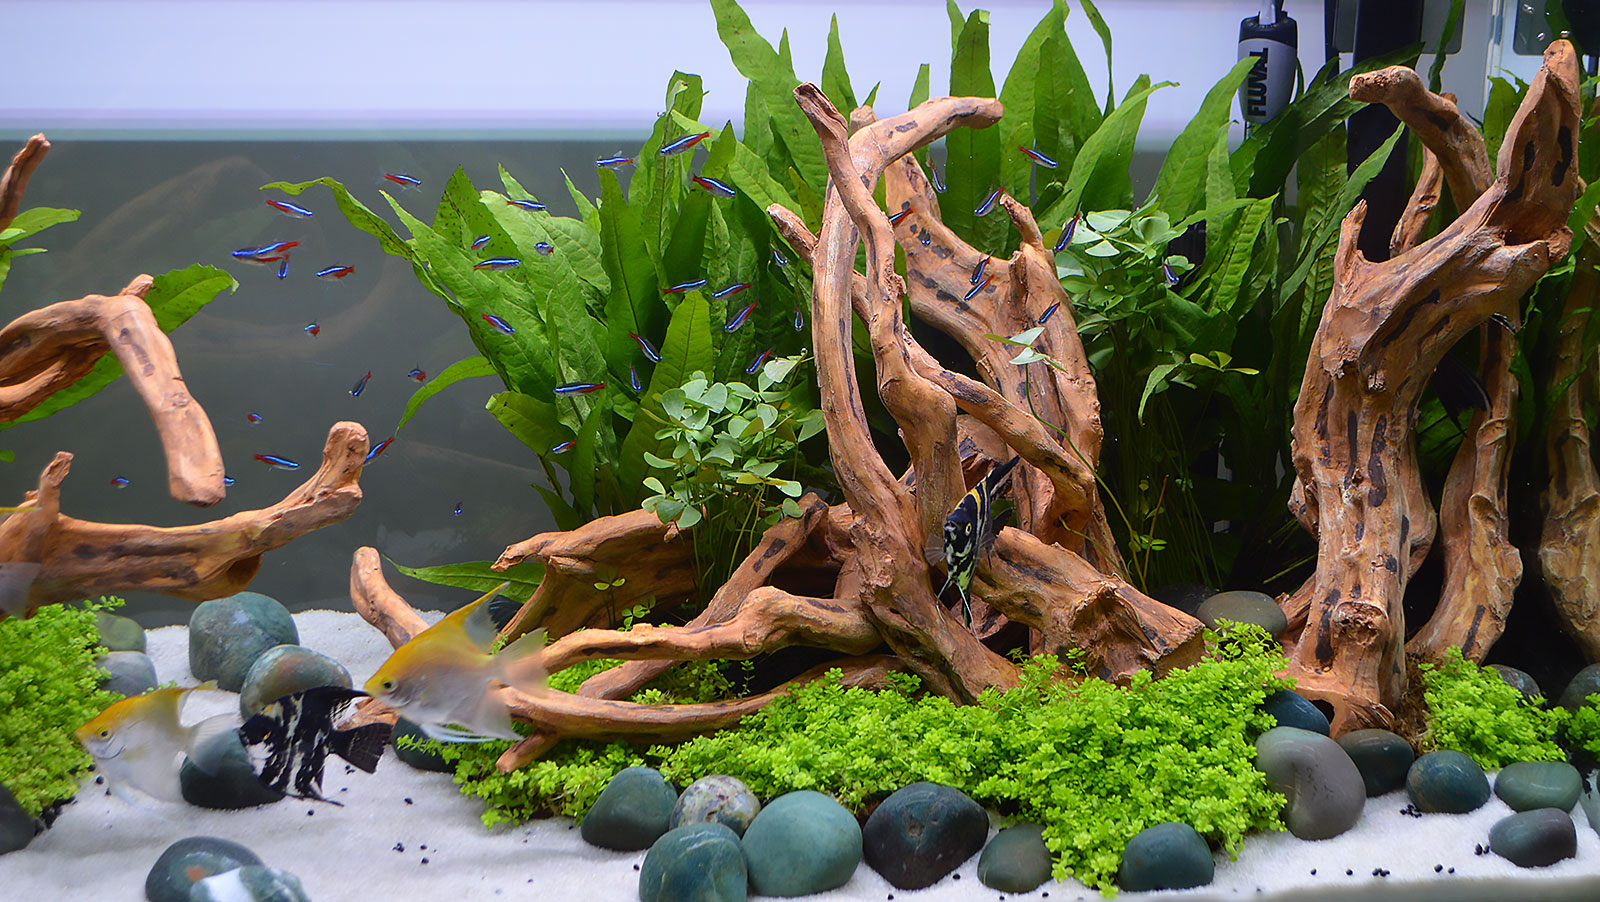 Planted Tanks Were Everywhere At The Aquatic Experience   Chicago, 2016.  You Can See